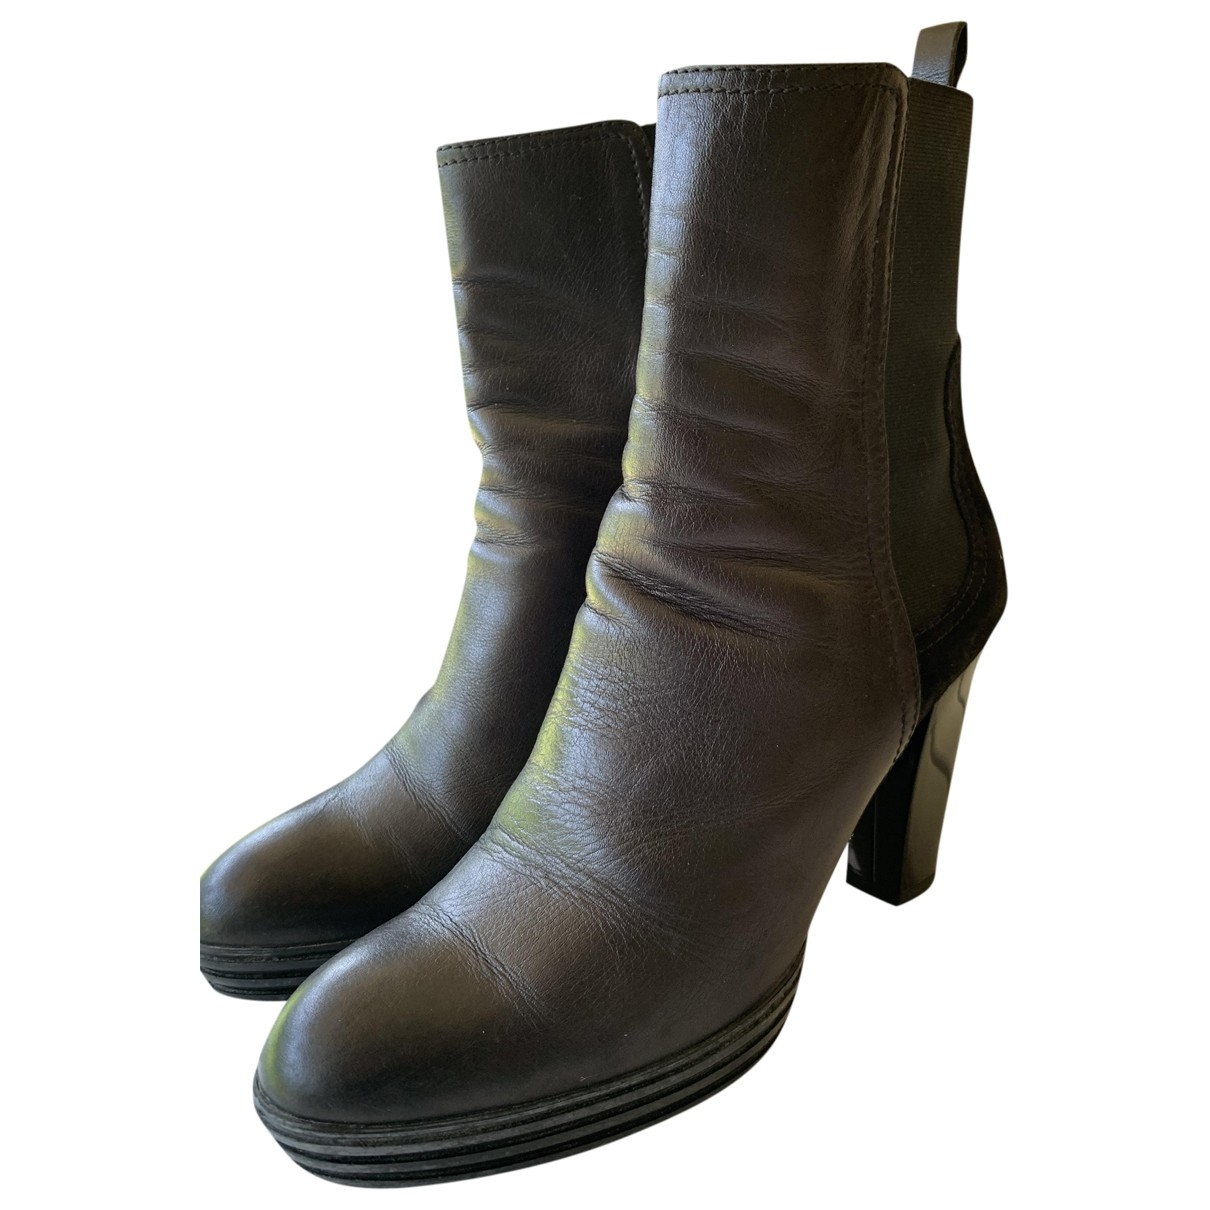 Hogan \N Black Leather Boots for Women 38 IT